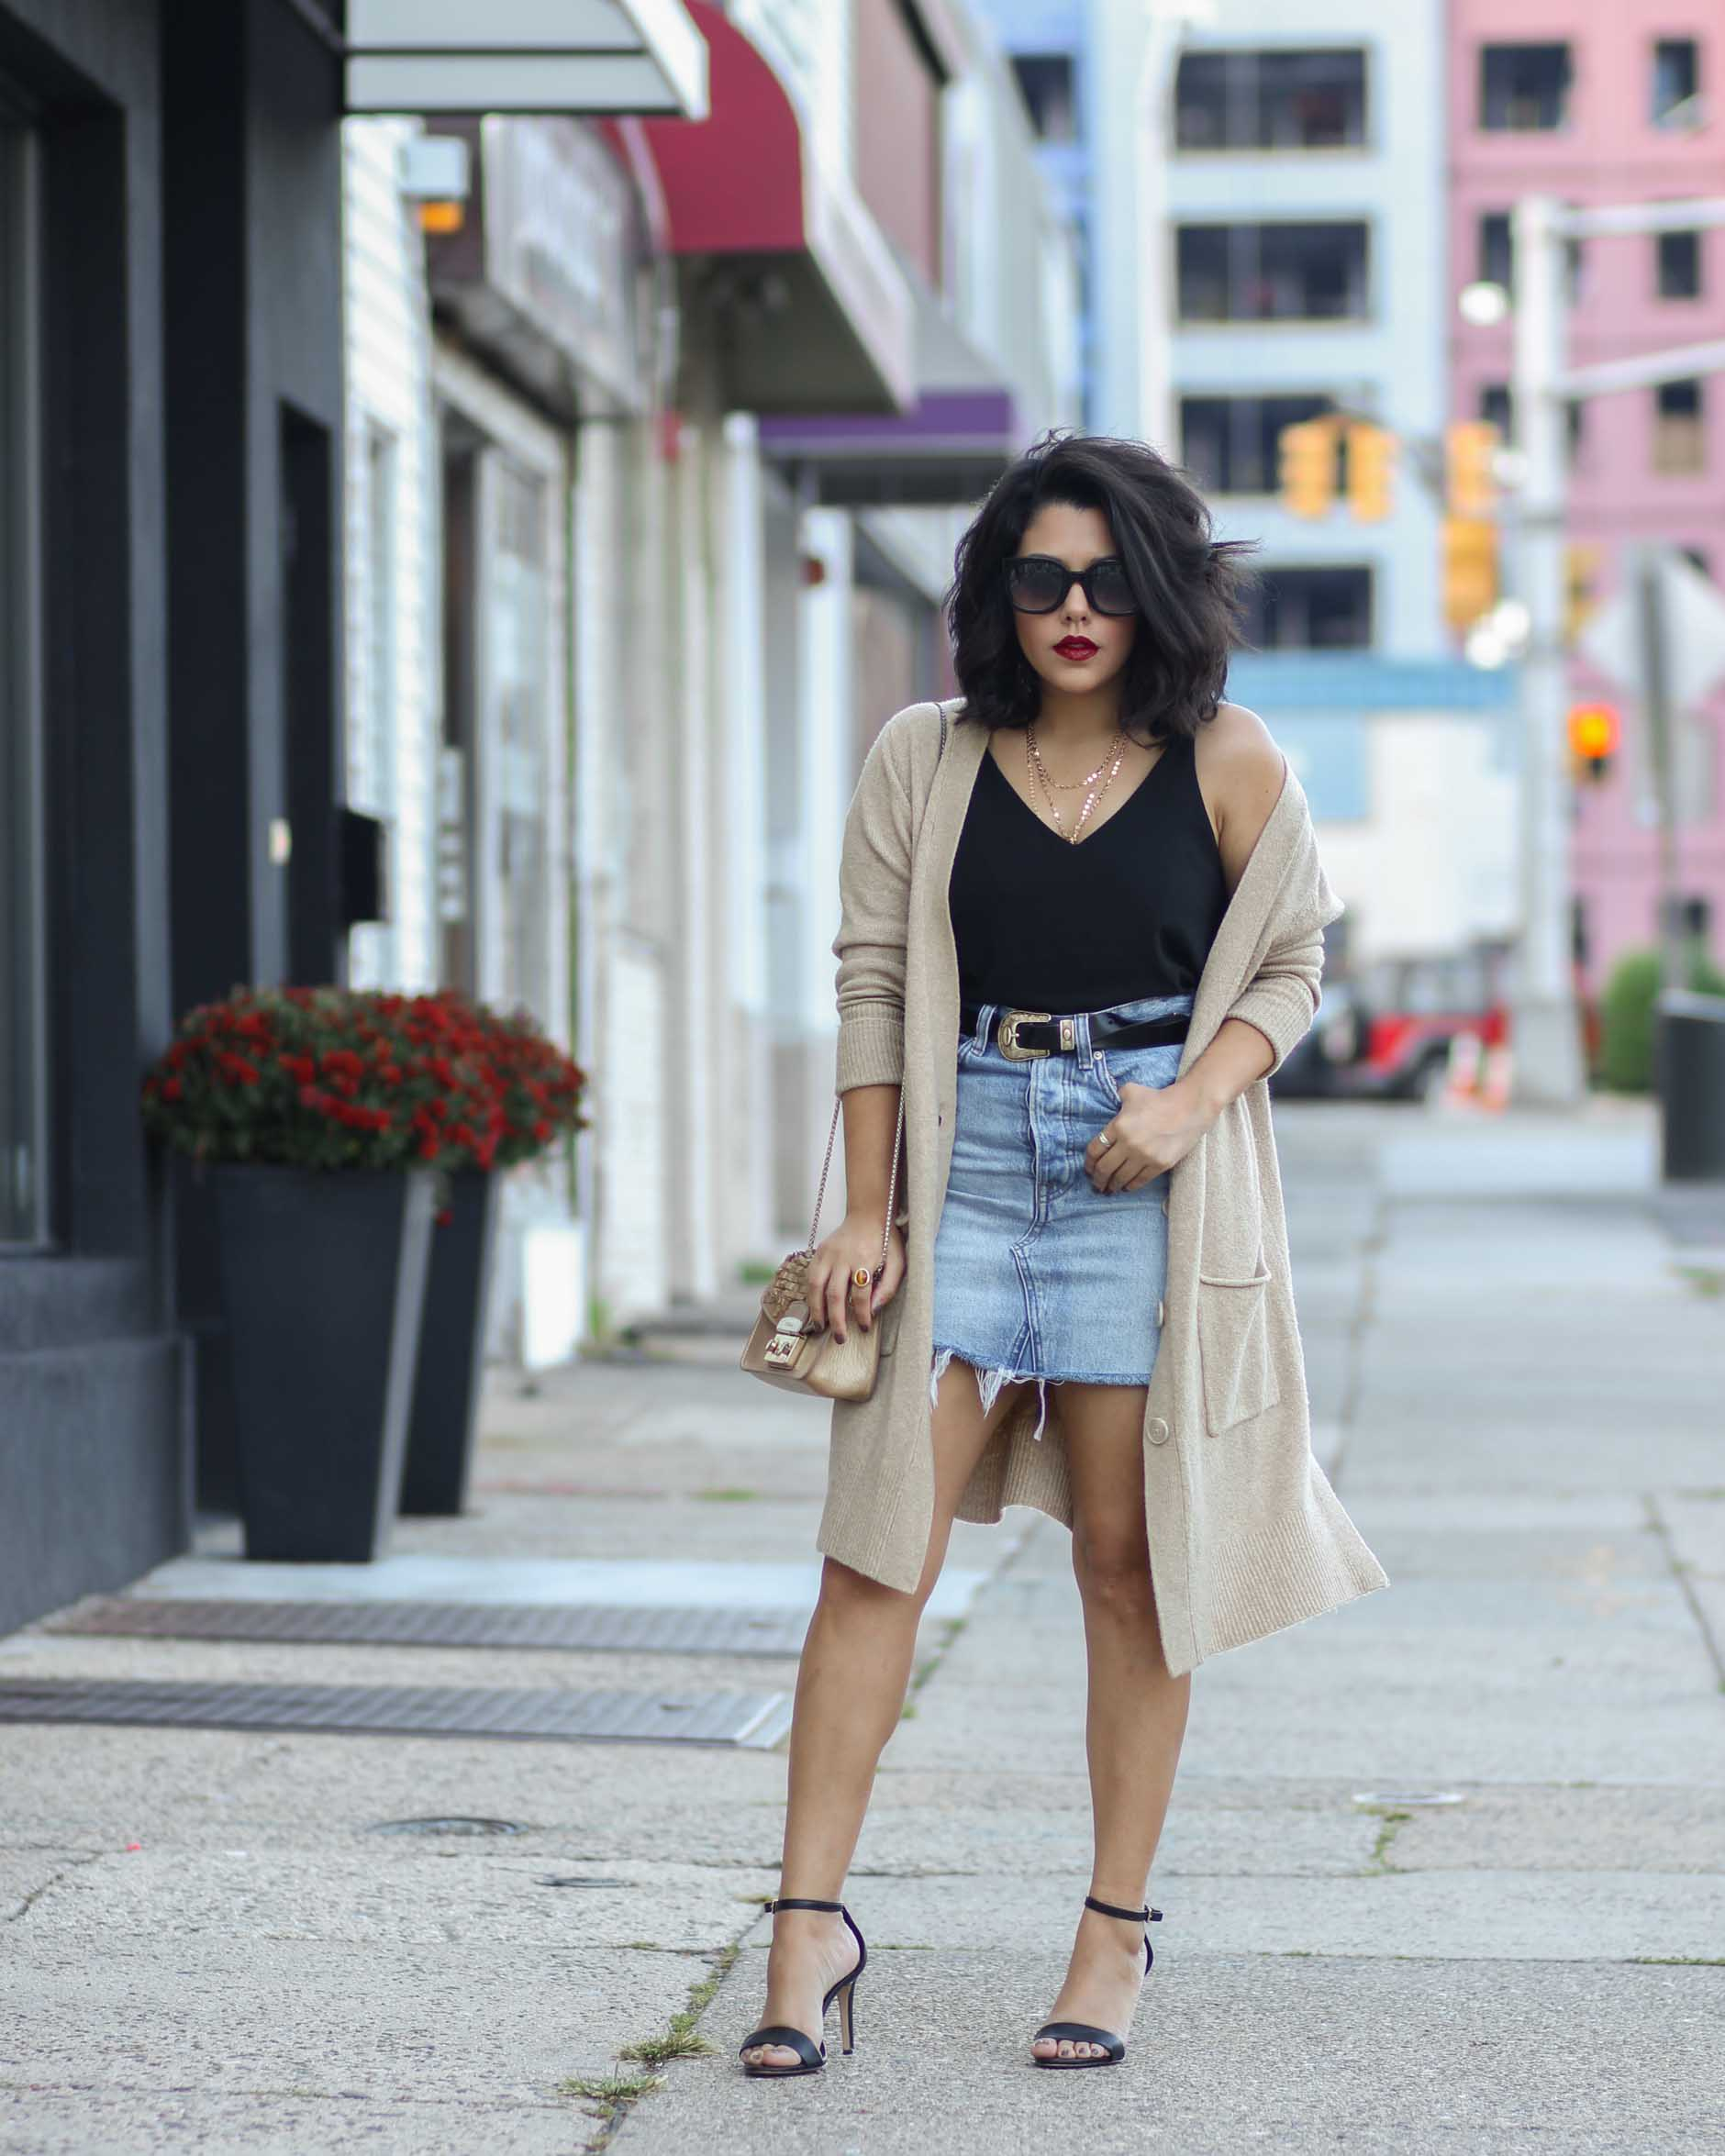 style blogger naty michele wearing a denim skirt and oversized cardigan